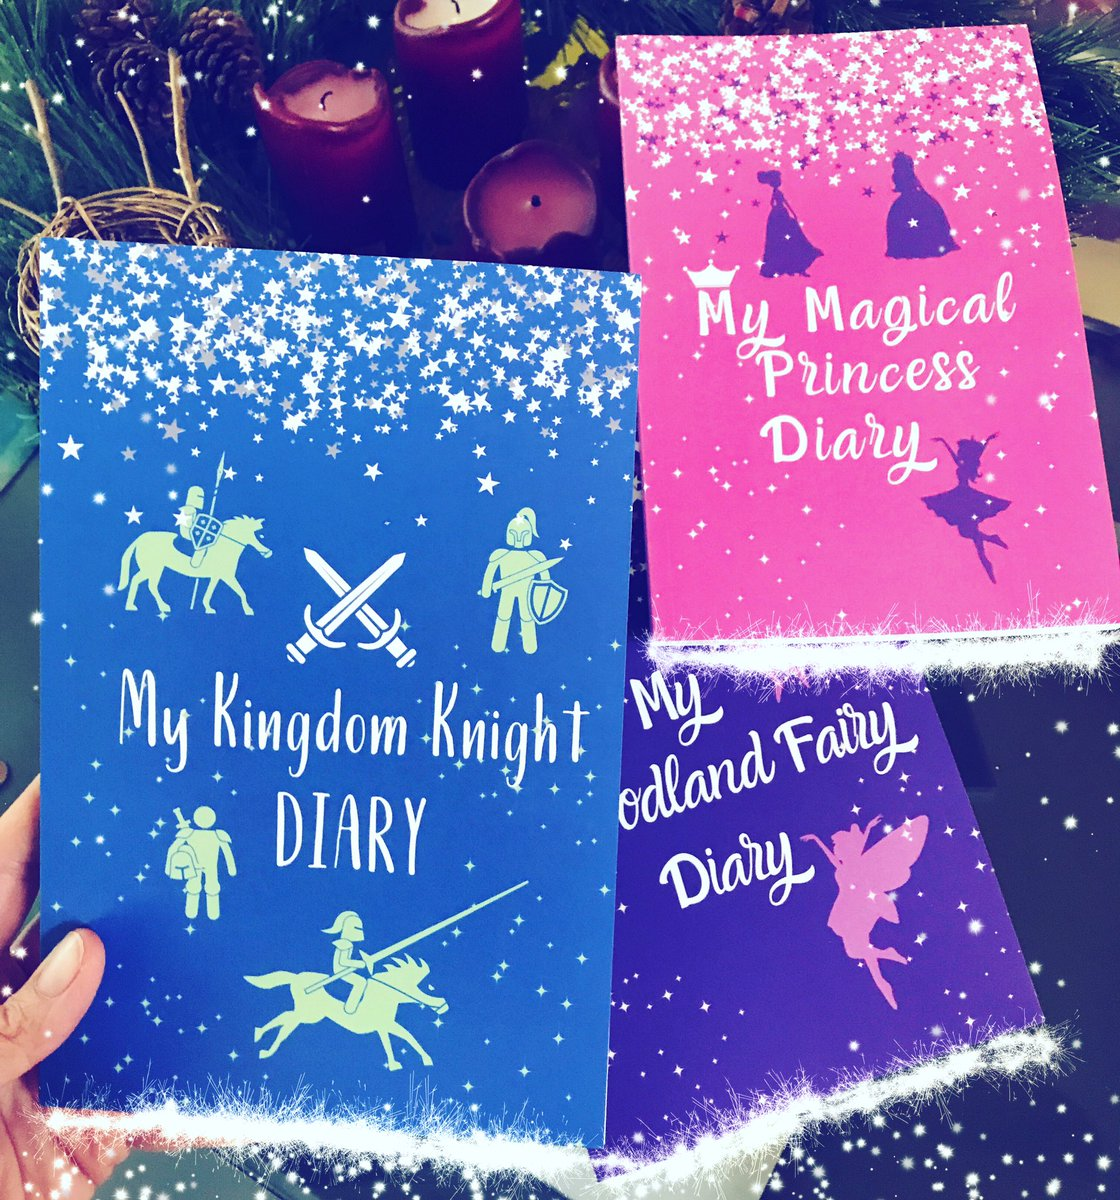 My magical Princess Diary … via @amazon #kidsjournals #childrensdiaries #diaries #diary #VampireDiaries #planner #planners #journaling #affordable  #lastminutegifts #bookofdreams #writerslife #writer #Amazon #GiftsDoneRight #GiftCards  #giftguide